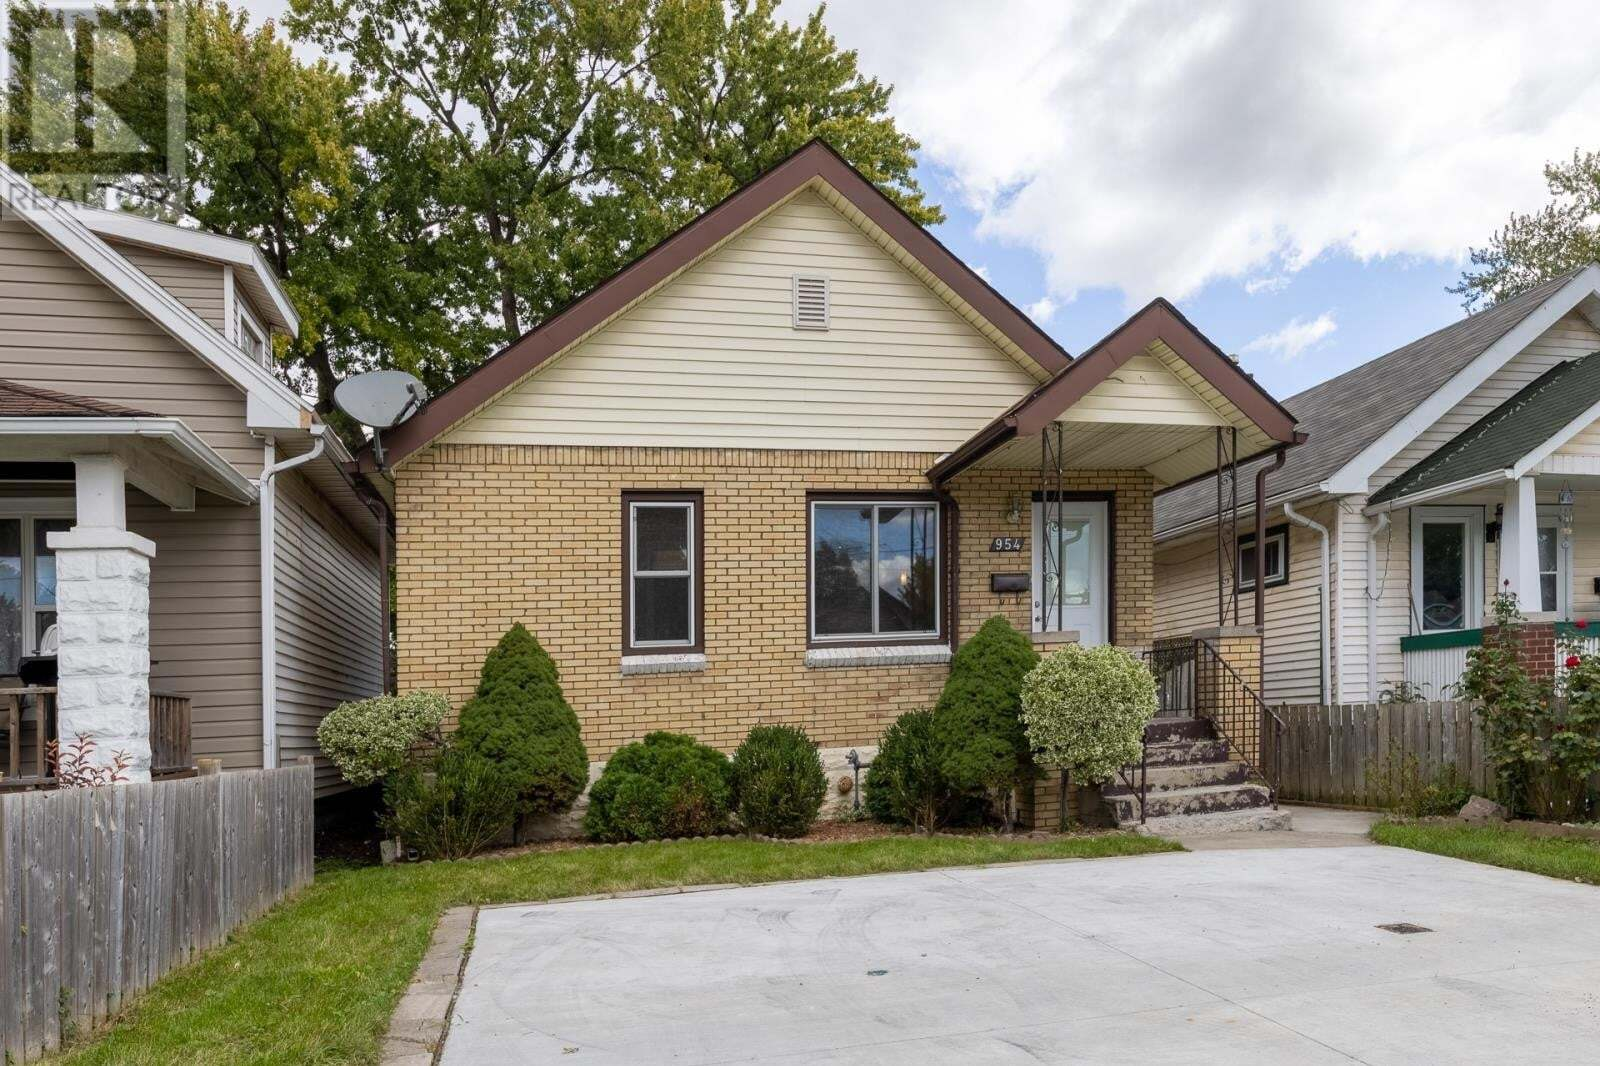 House for sale at 954 Mckay Ave Windsor Ontario - MLS: 20012334